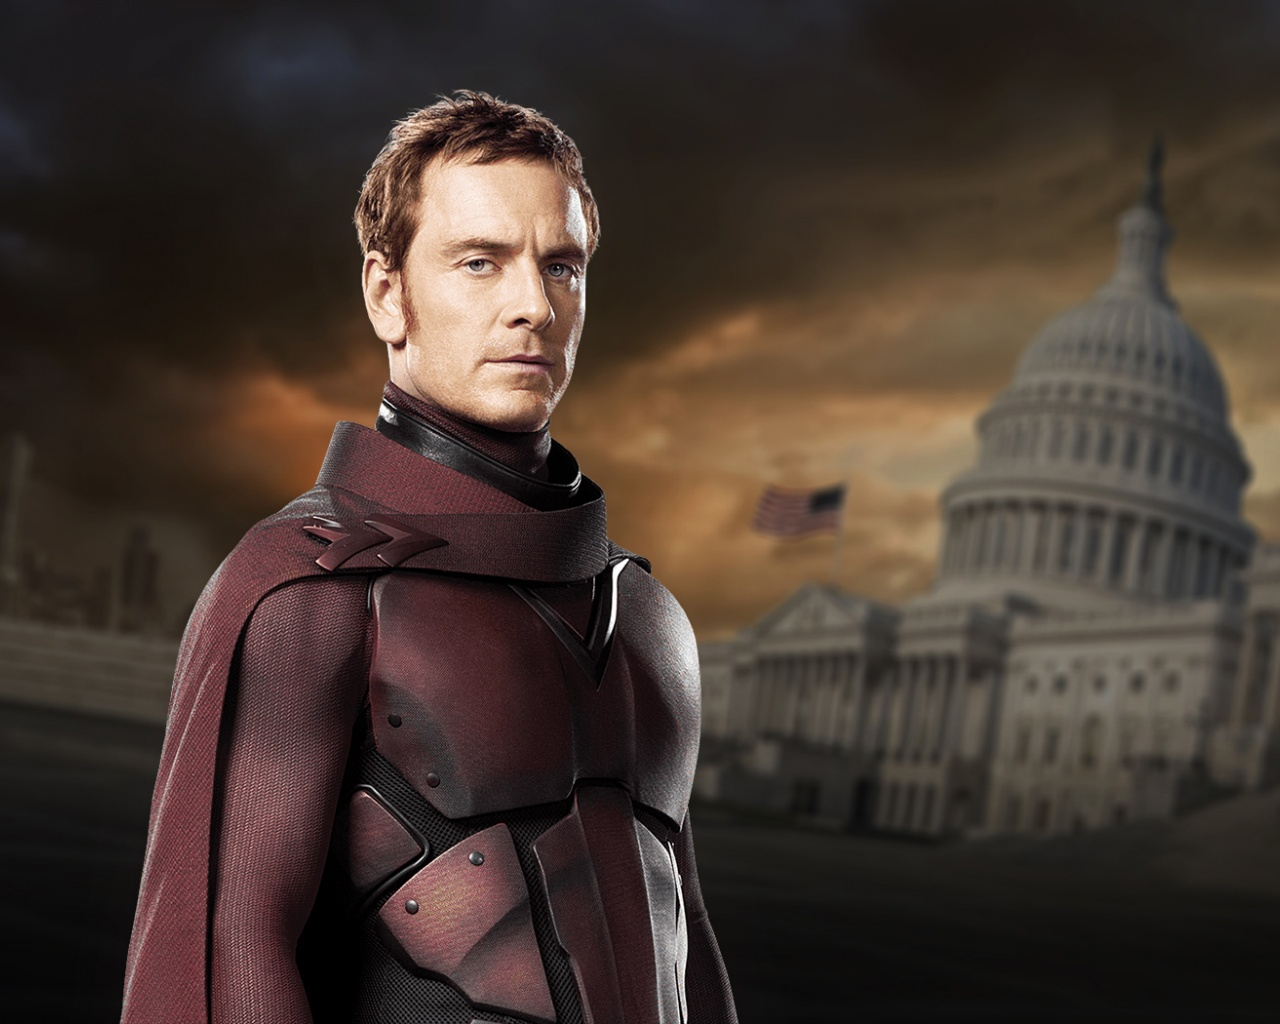 ws_Young_Magneto_1280x1024.jpg